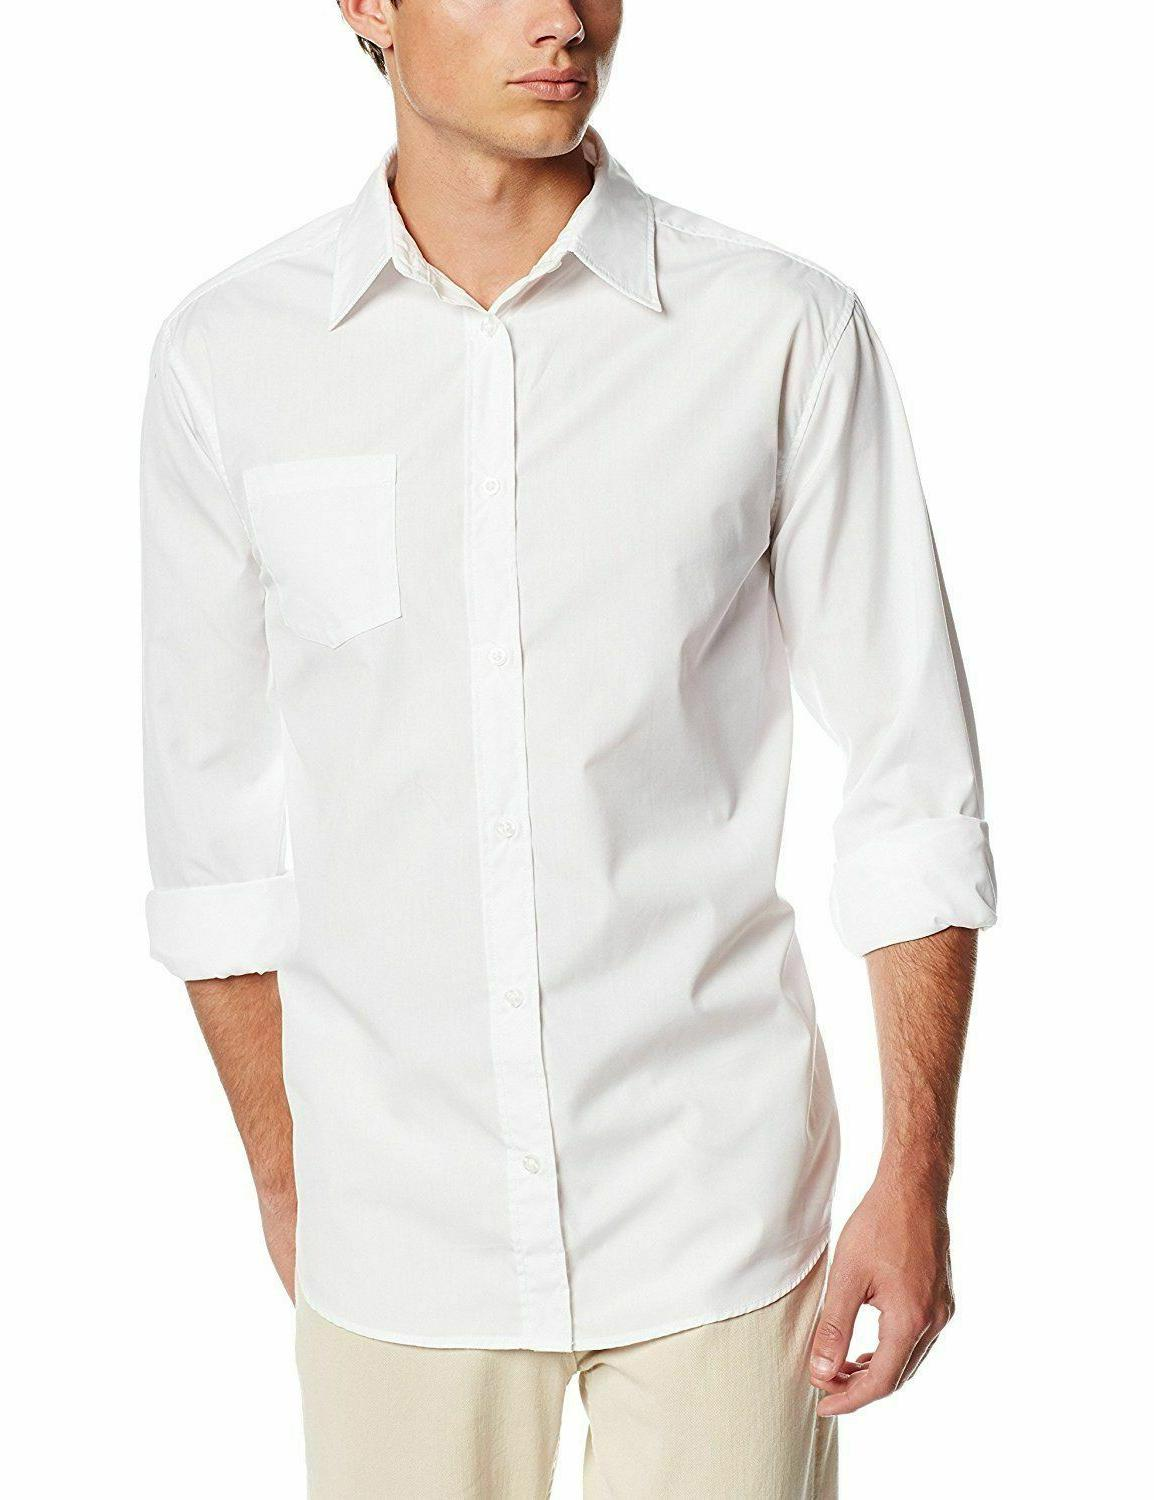 uniforms long sleeve dress shirt